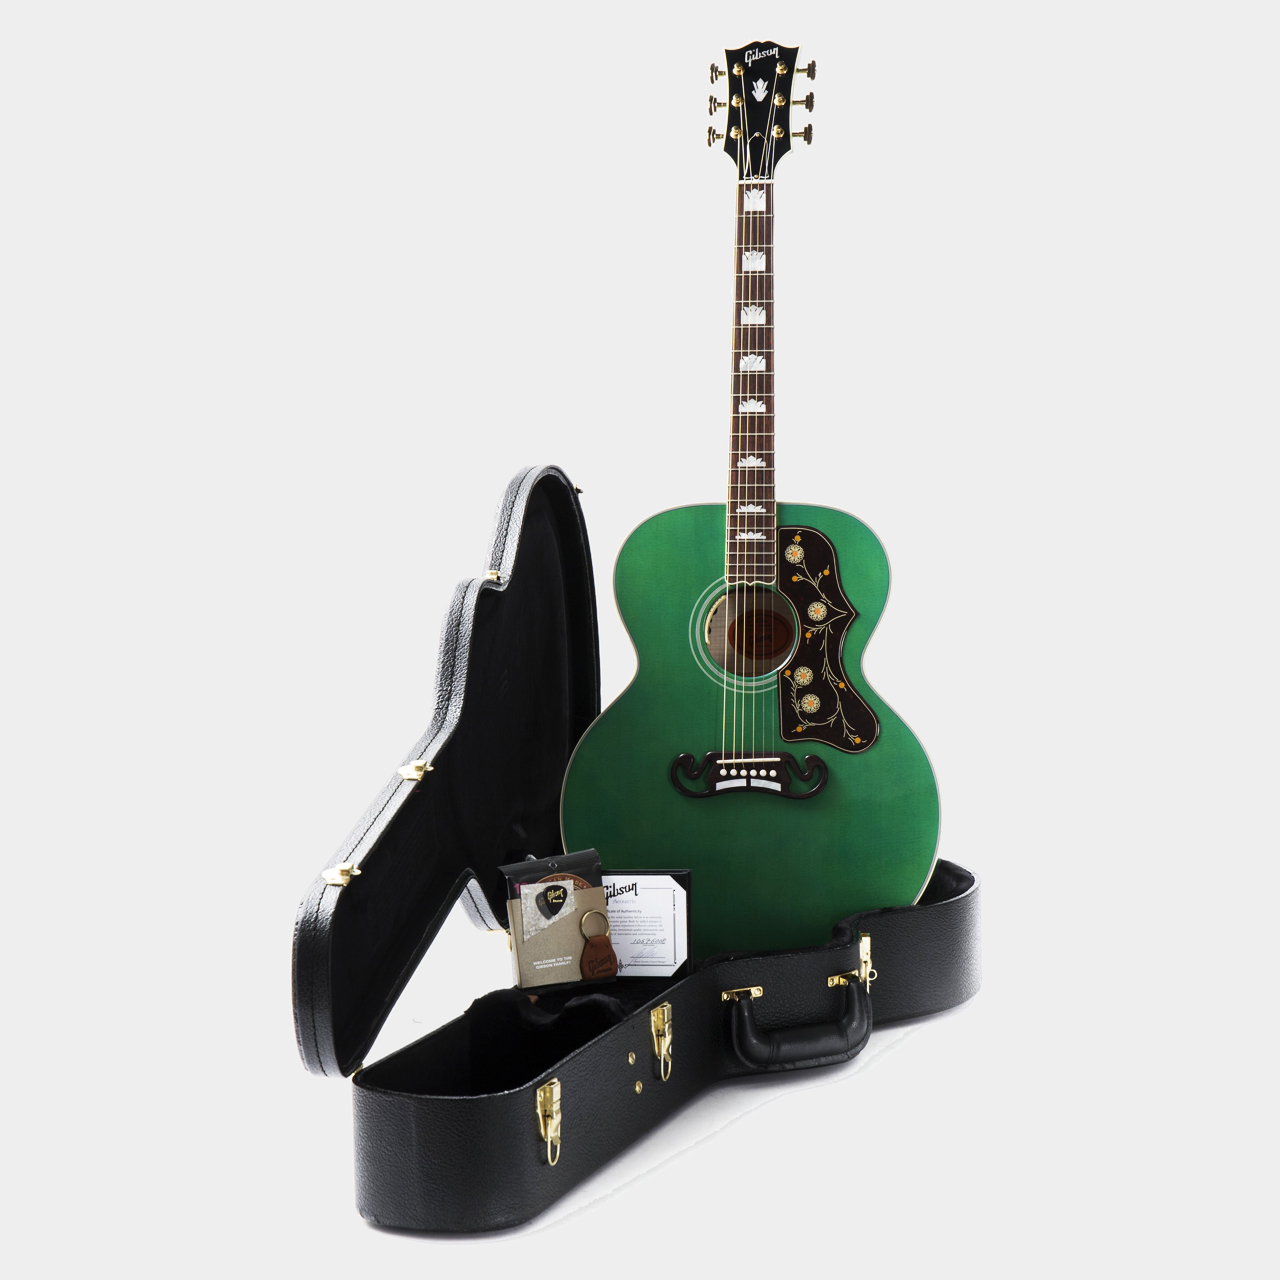 Gibson SJ-200 Sea Green Limited Case